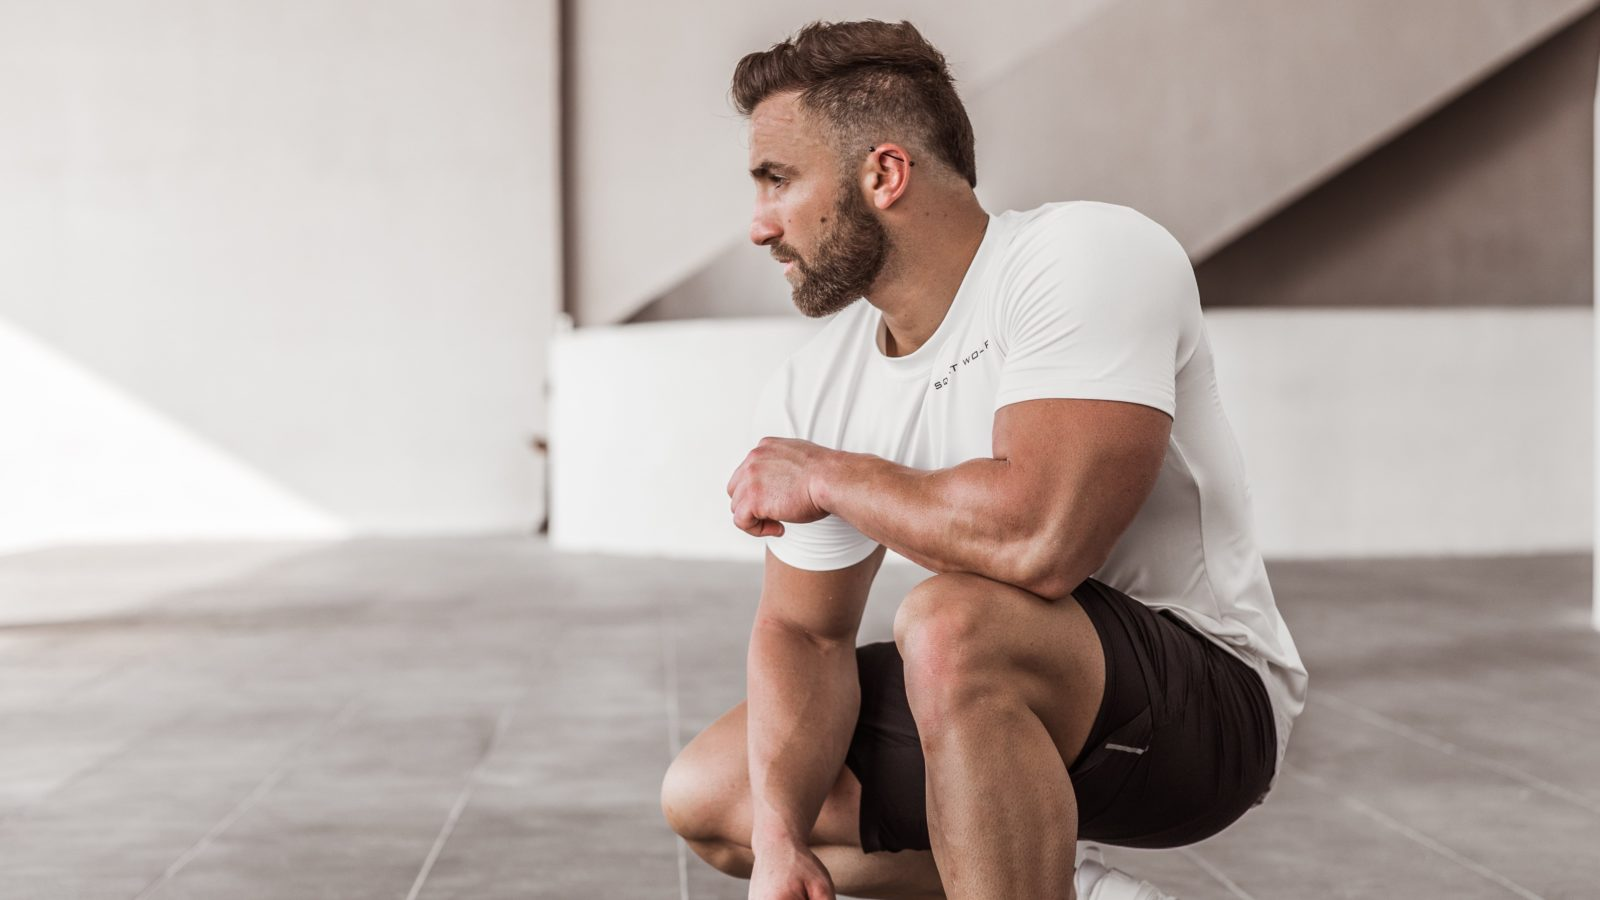 Best Gym Shorts for Men; 7 Performance-Boosting Essentials to Look For